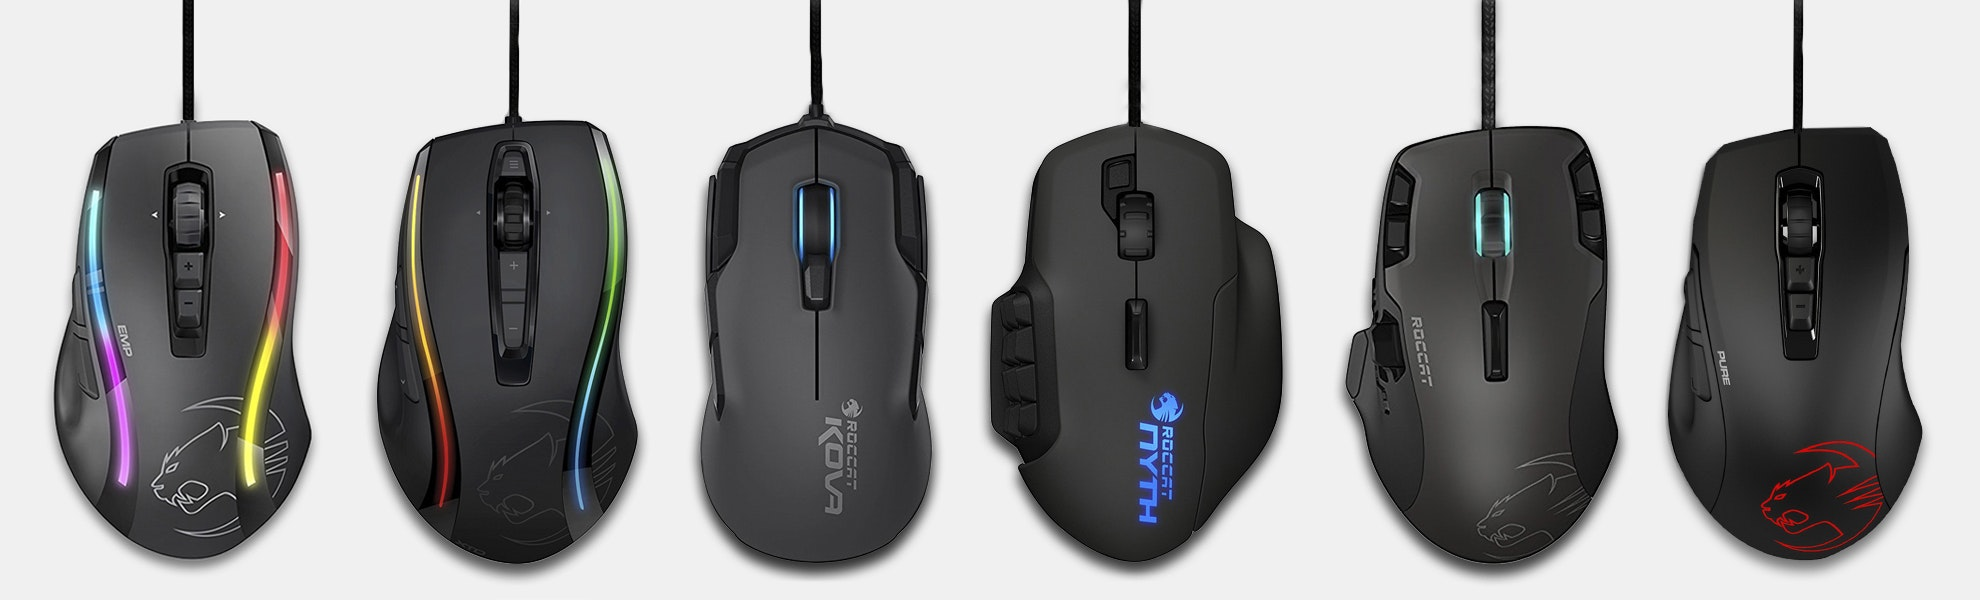 Roccat Gaming Mice